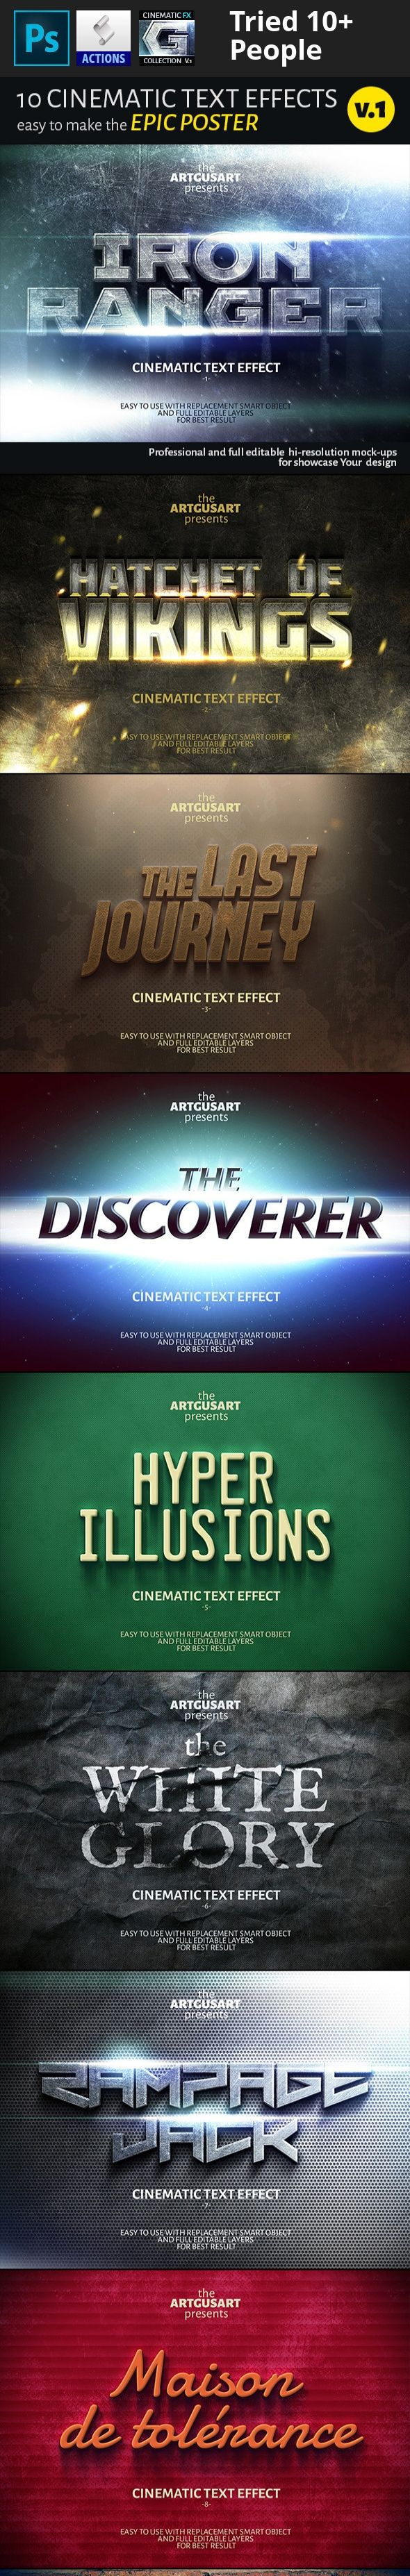 3d, action effect, artgusart, brand, cinema, cinematic, effect, film, label, logo, mock-up, mockup, modern, movie, poster, presentation, print, professional, psd, realistic, spectacular, style, text, title, type, web   10 Cinematic Text Effects v.1      You can create spectacular cinema poster or club flyer, presentation of logo and facebook cover, magazine title or other design on your taste   in few clicks  !        Features          Easy in use         Smart Object Replacement       ...